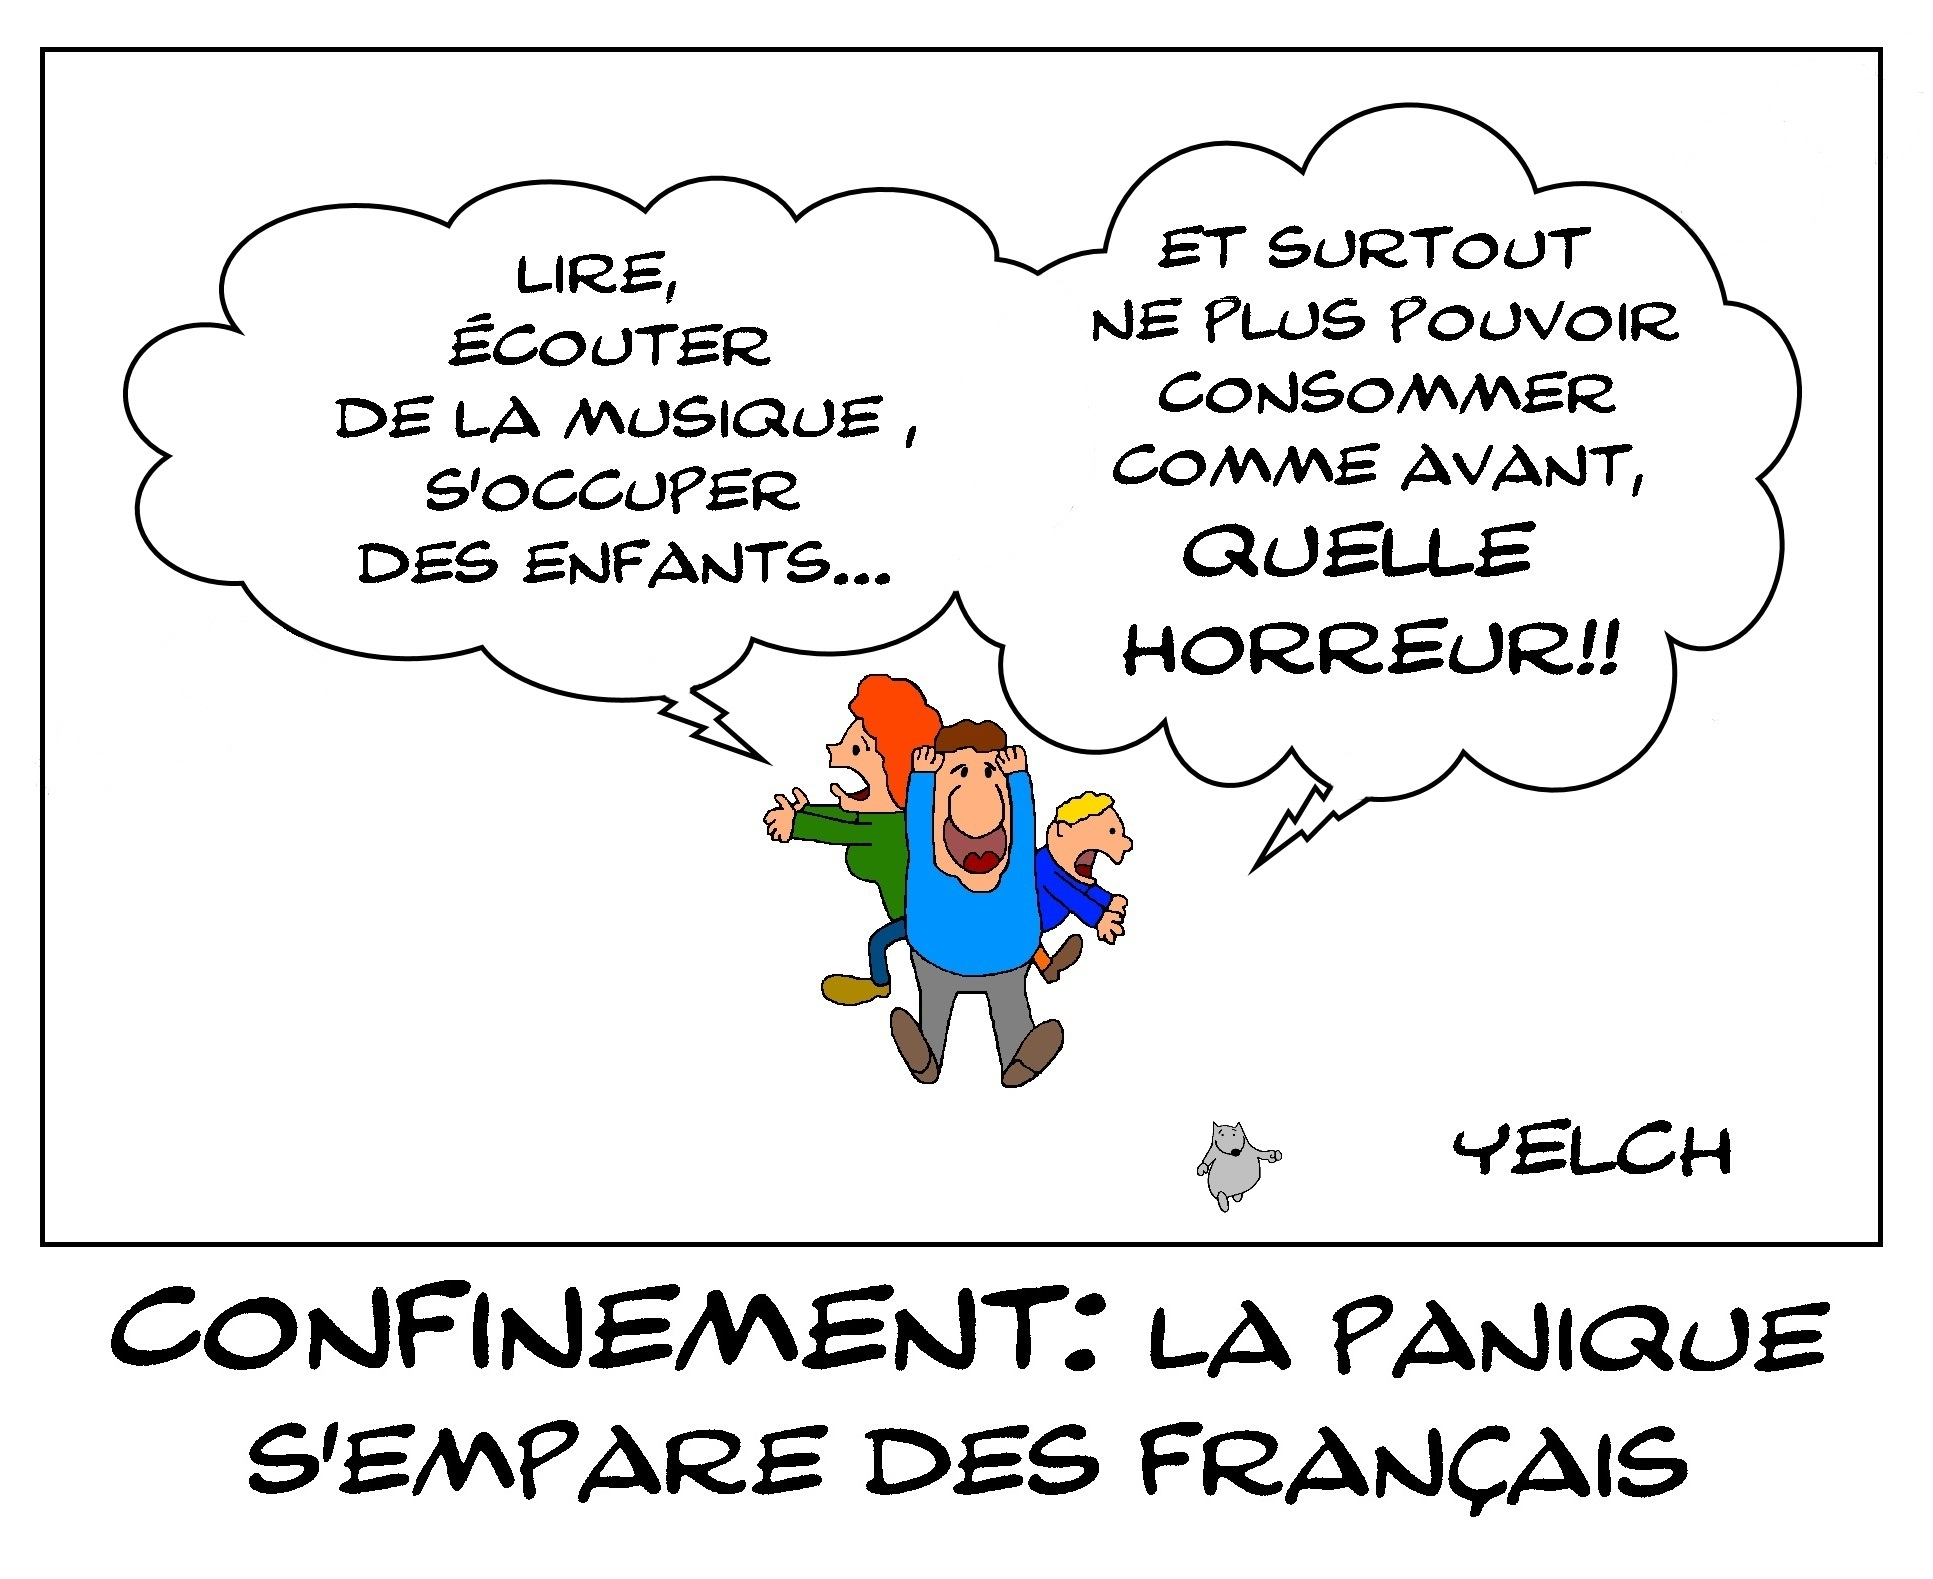 LA PANIQUE DU CONFINEMENT